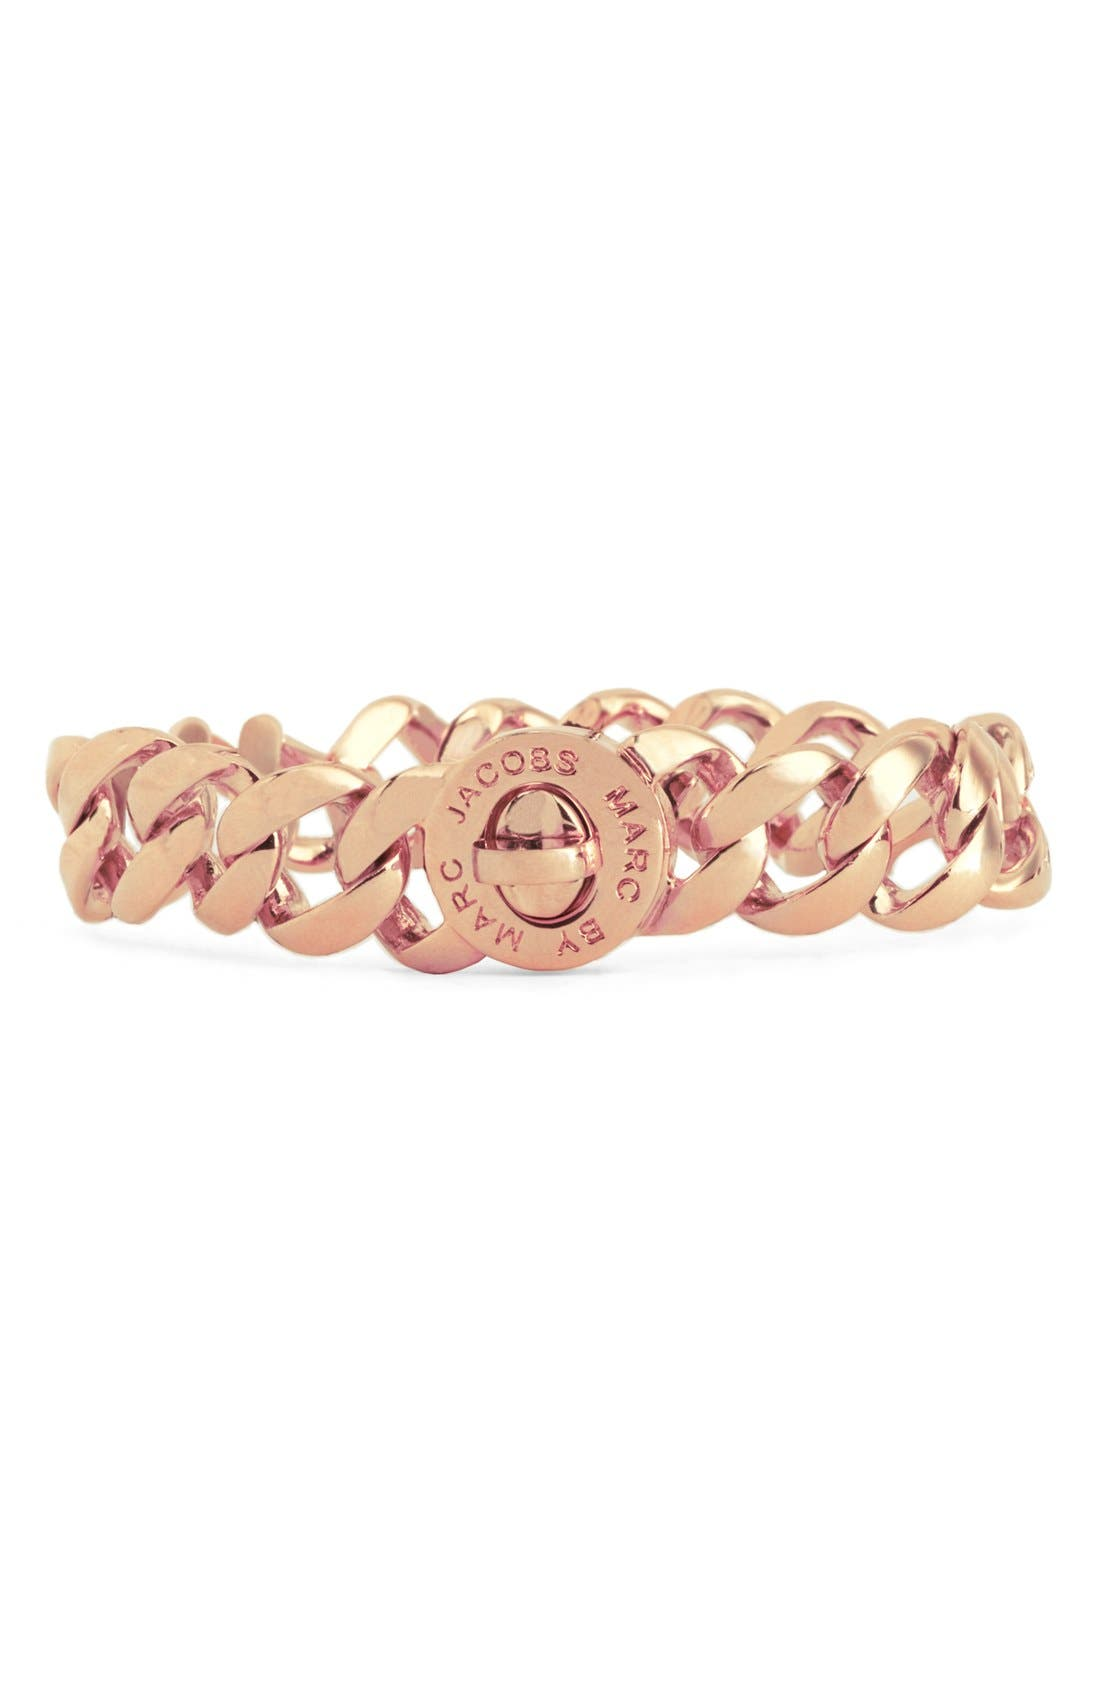 'Turnlock - Katie' Small Bracelet,                             Main thumbnail 1, color,                             Rose Gold